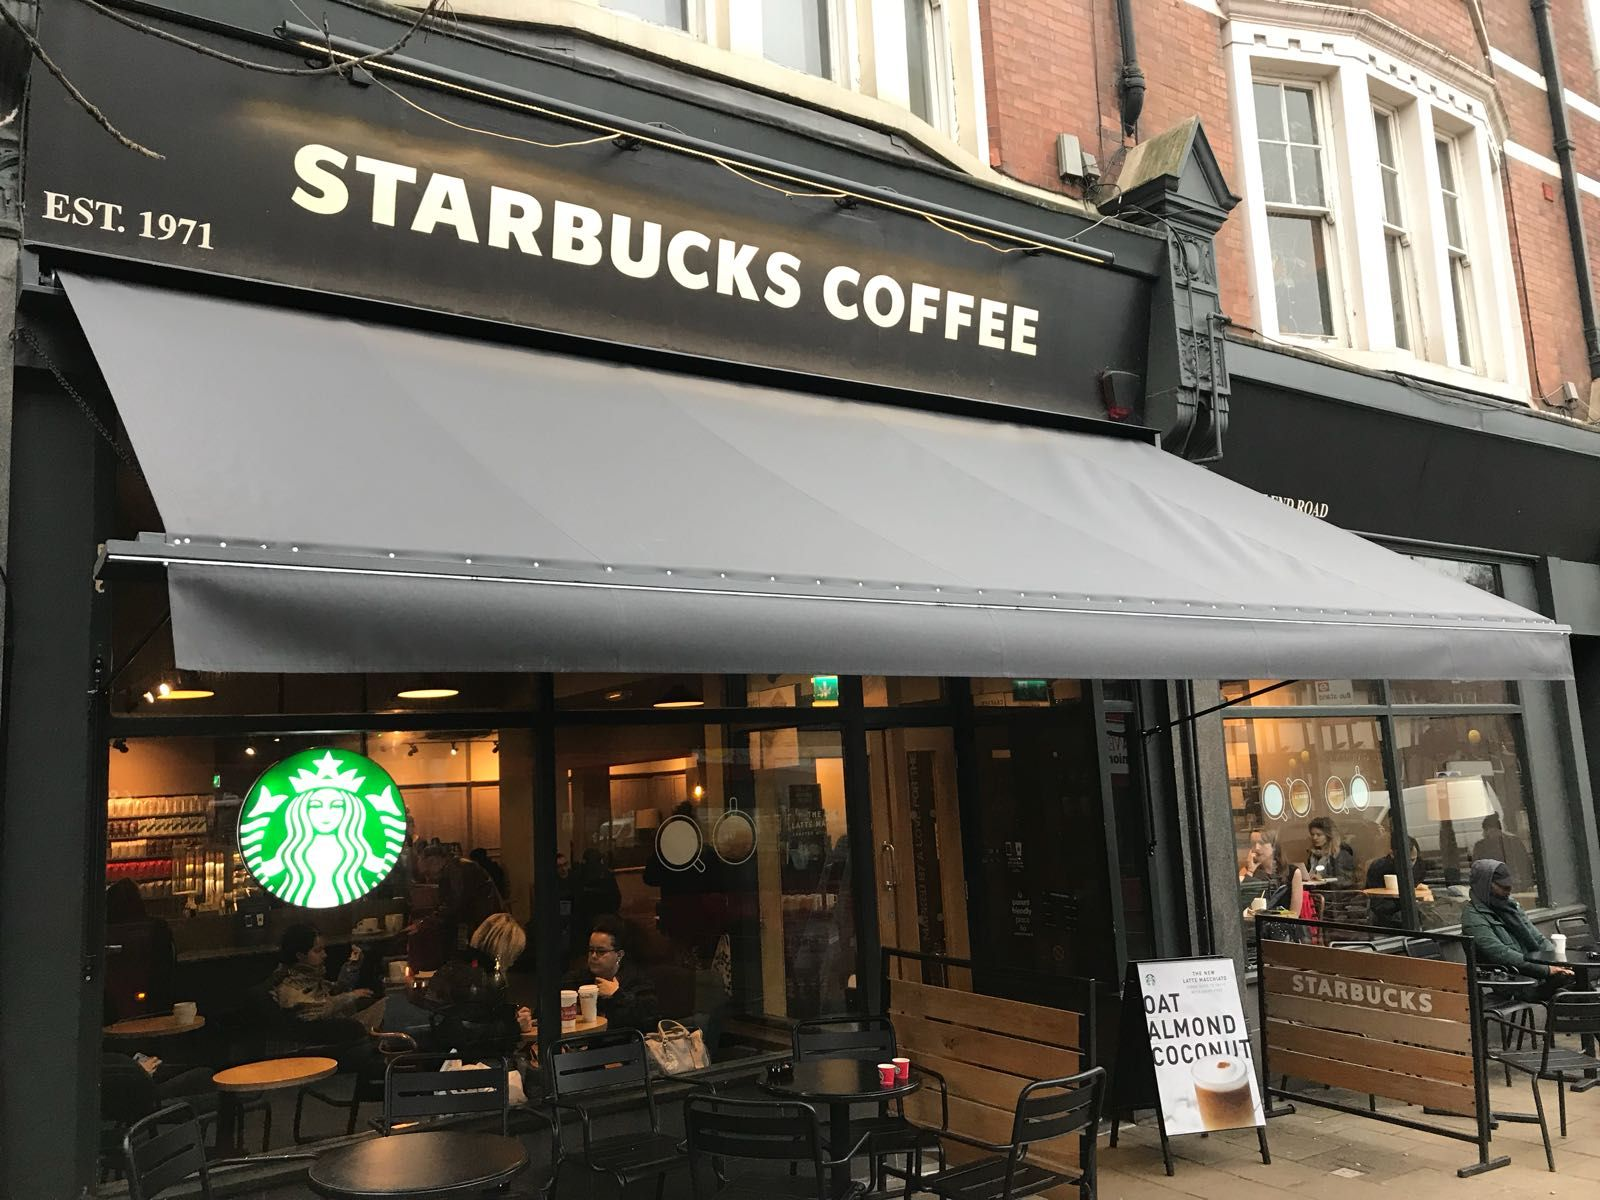 A New Victorian Awning For Starbucks Today They Have To Be One Of The Most Recognised Brands On The High Street And R Terrace Design Shop Awning Blinds Design